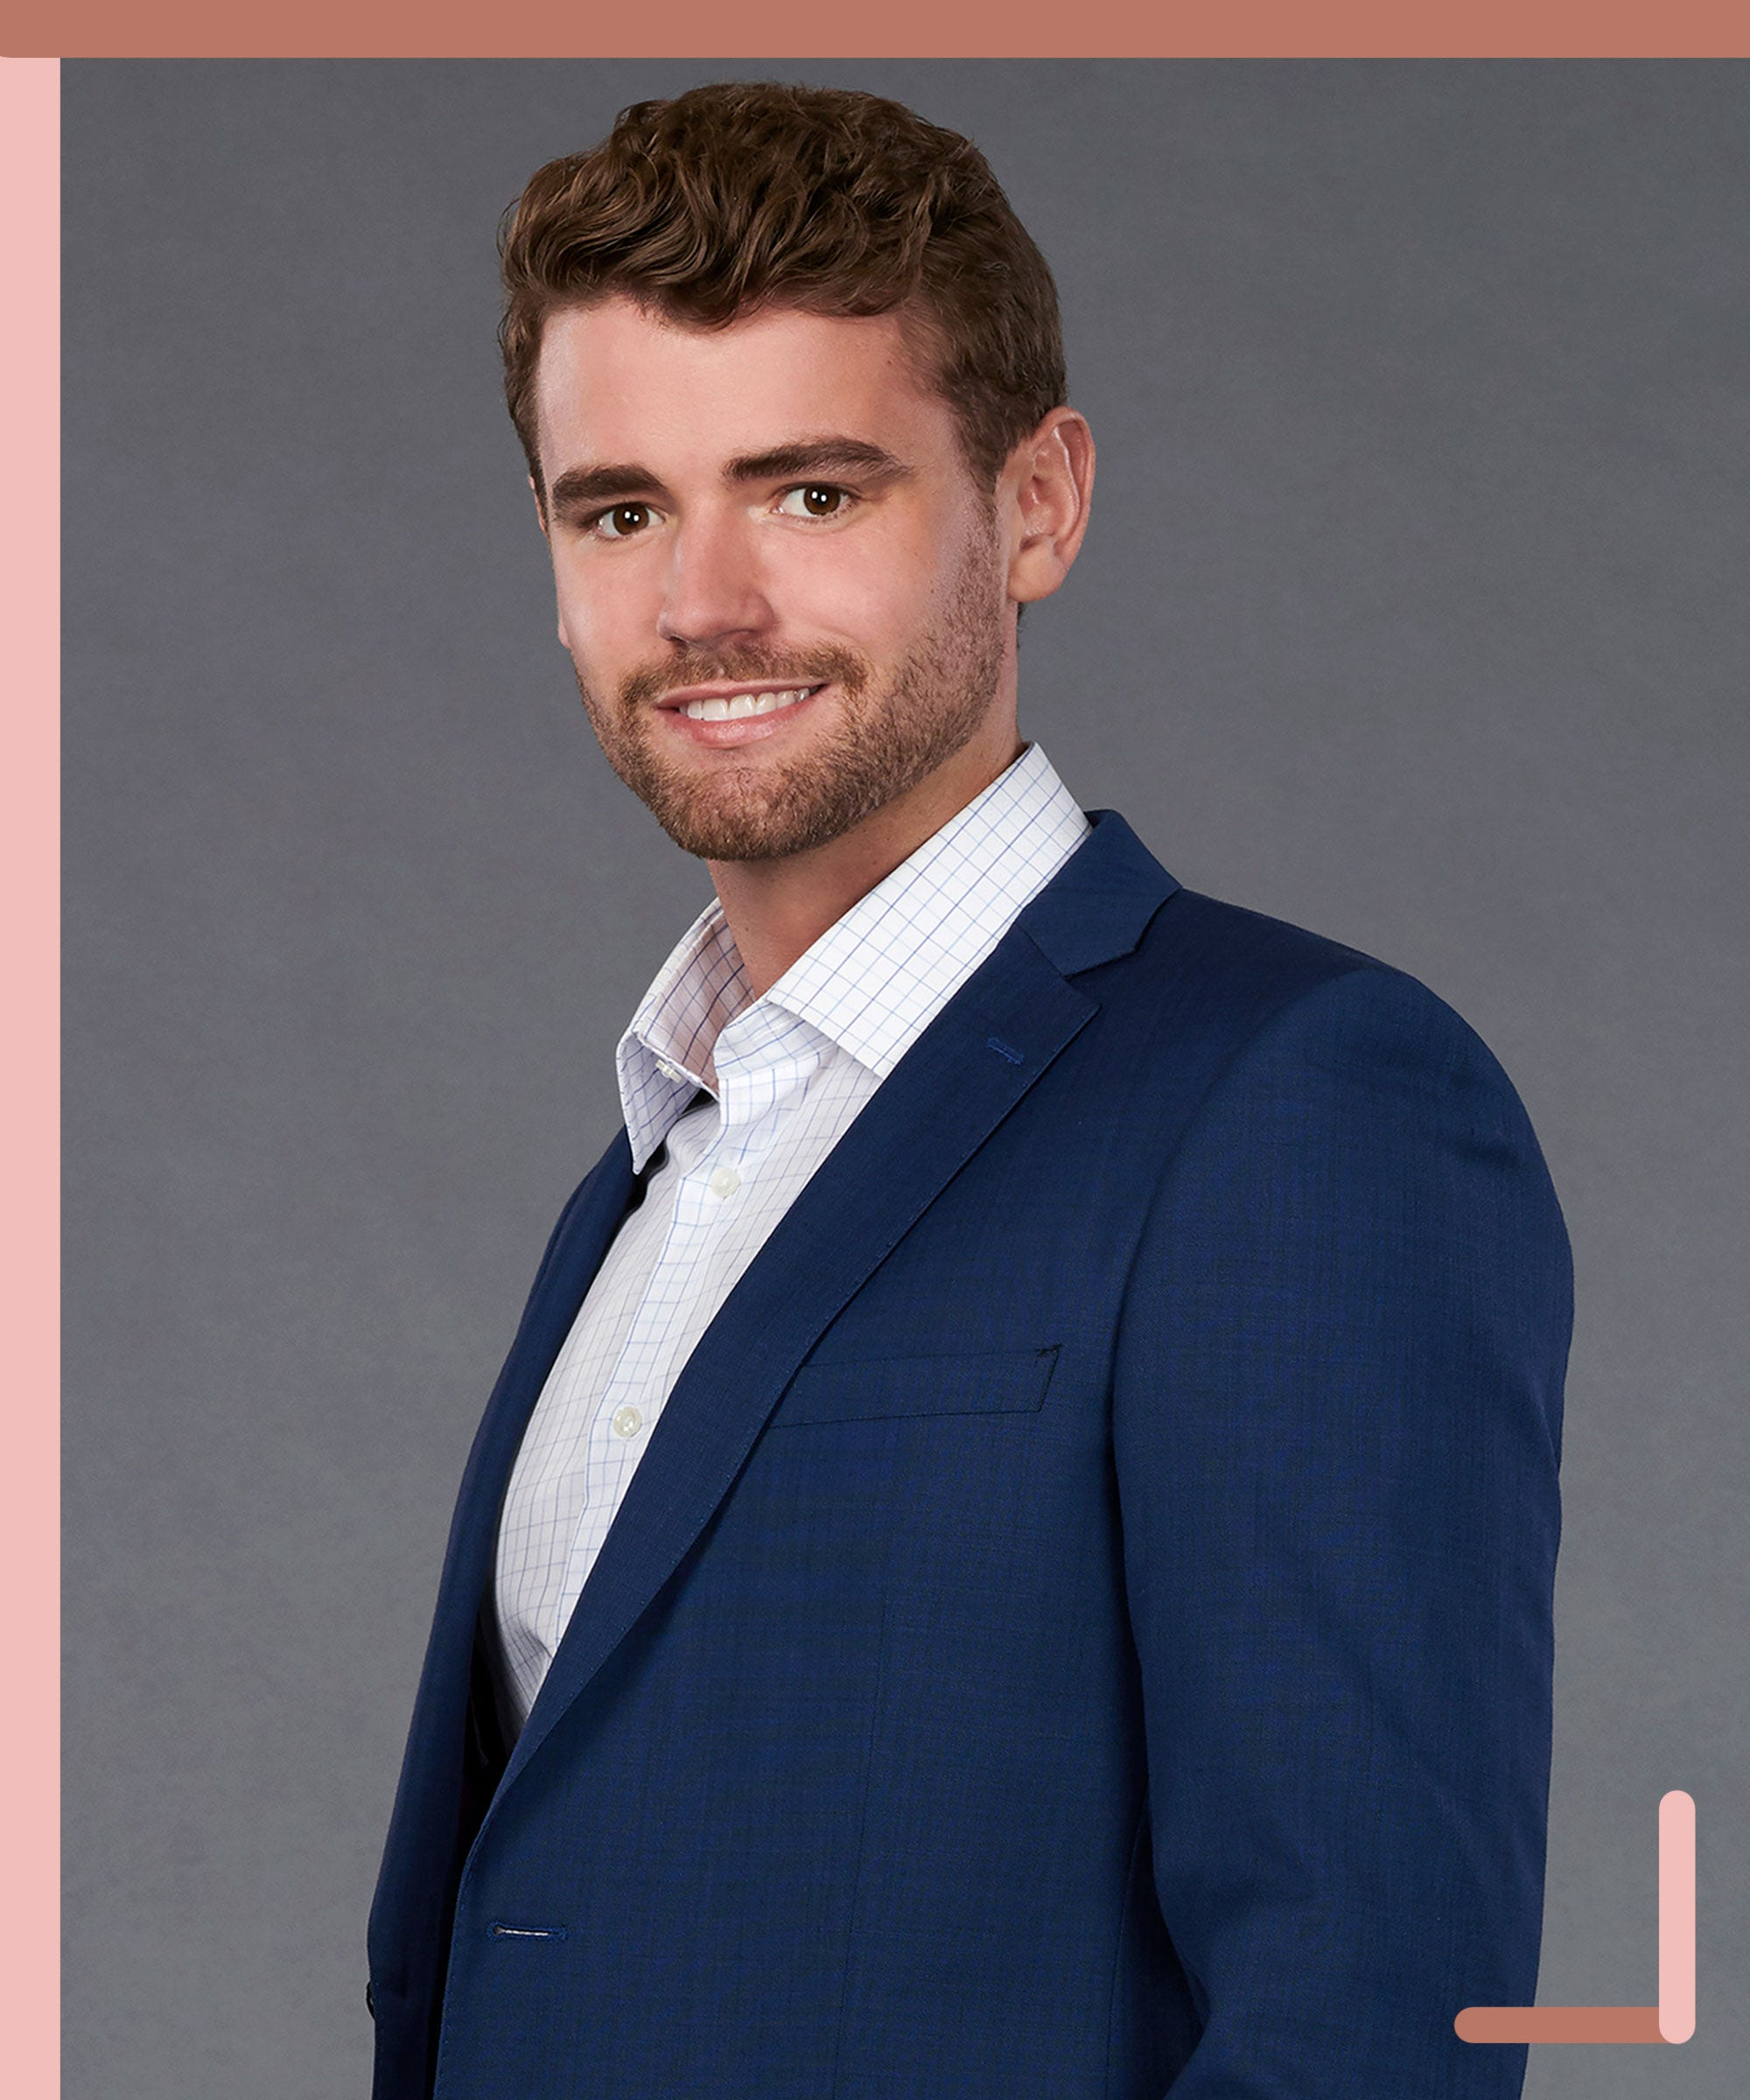 Does Luke S. From The Bachelorette Even Have A Tequila Brand?